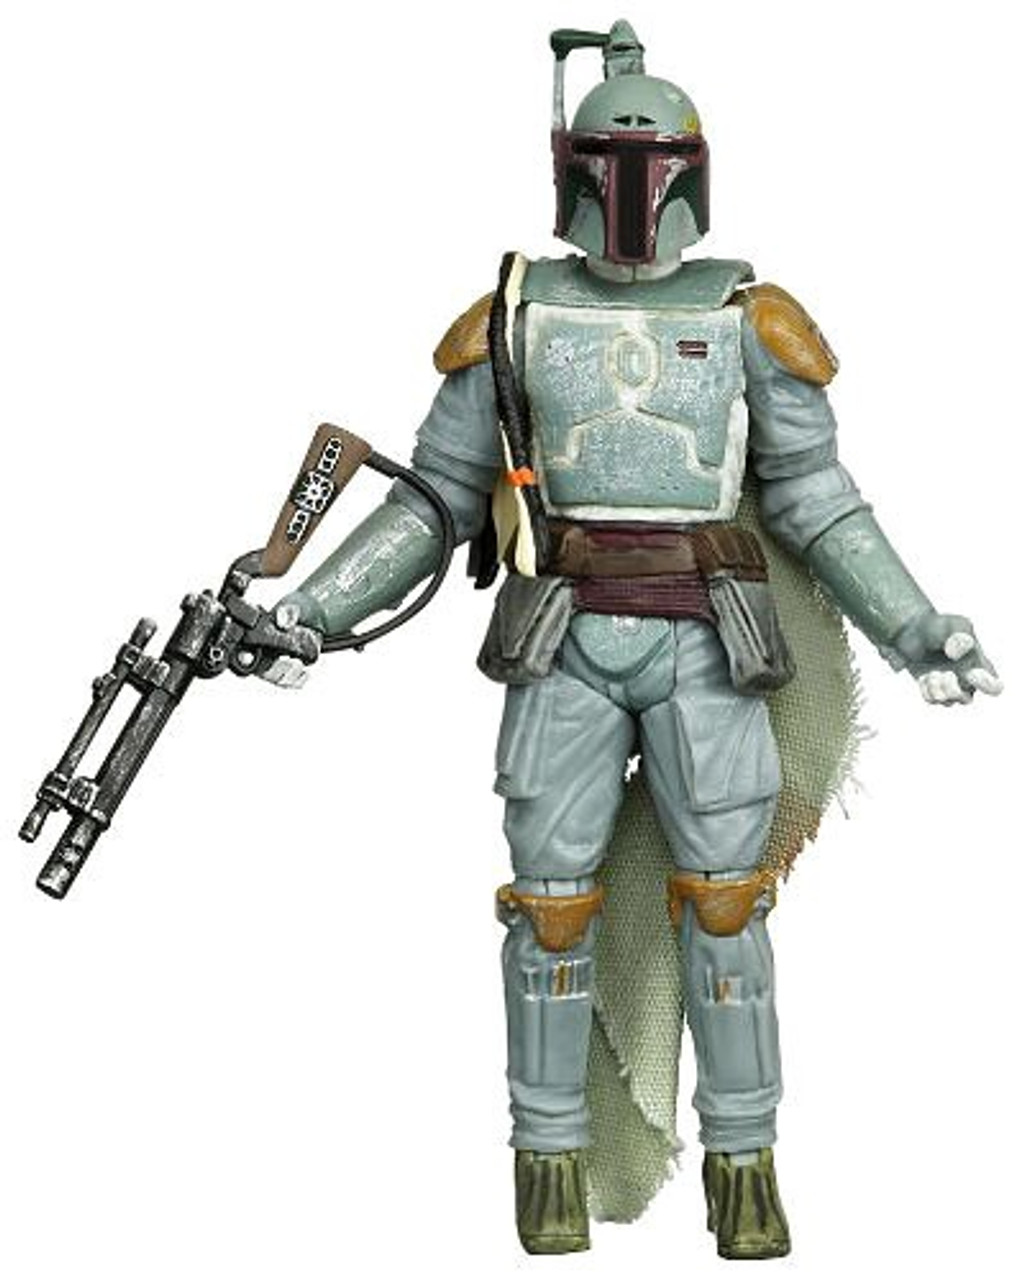 Star Wars Return of the Jedi Vintage Collection 2010 Boba Fett Action Figure #09